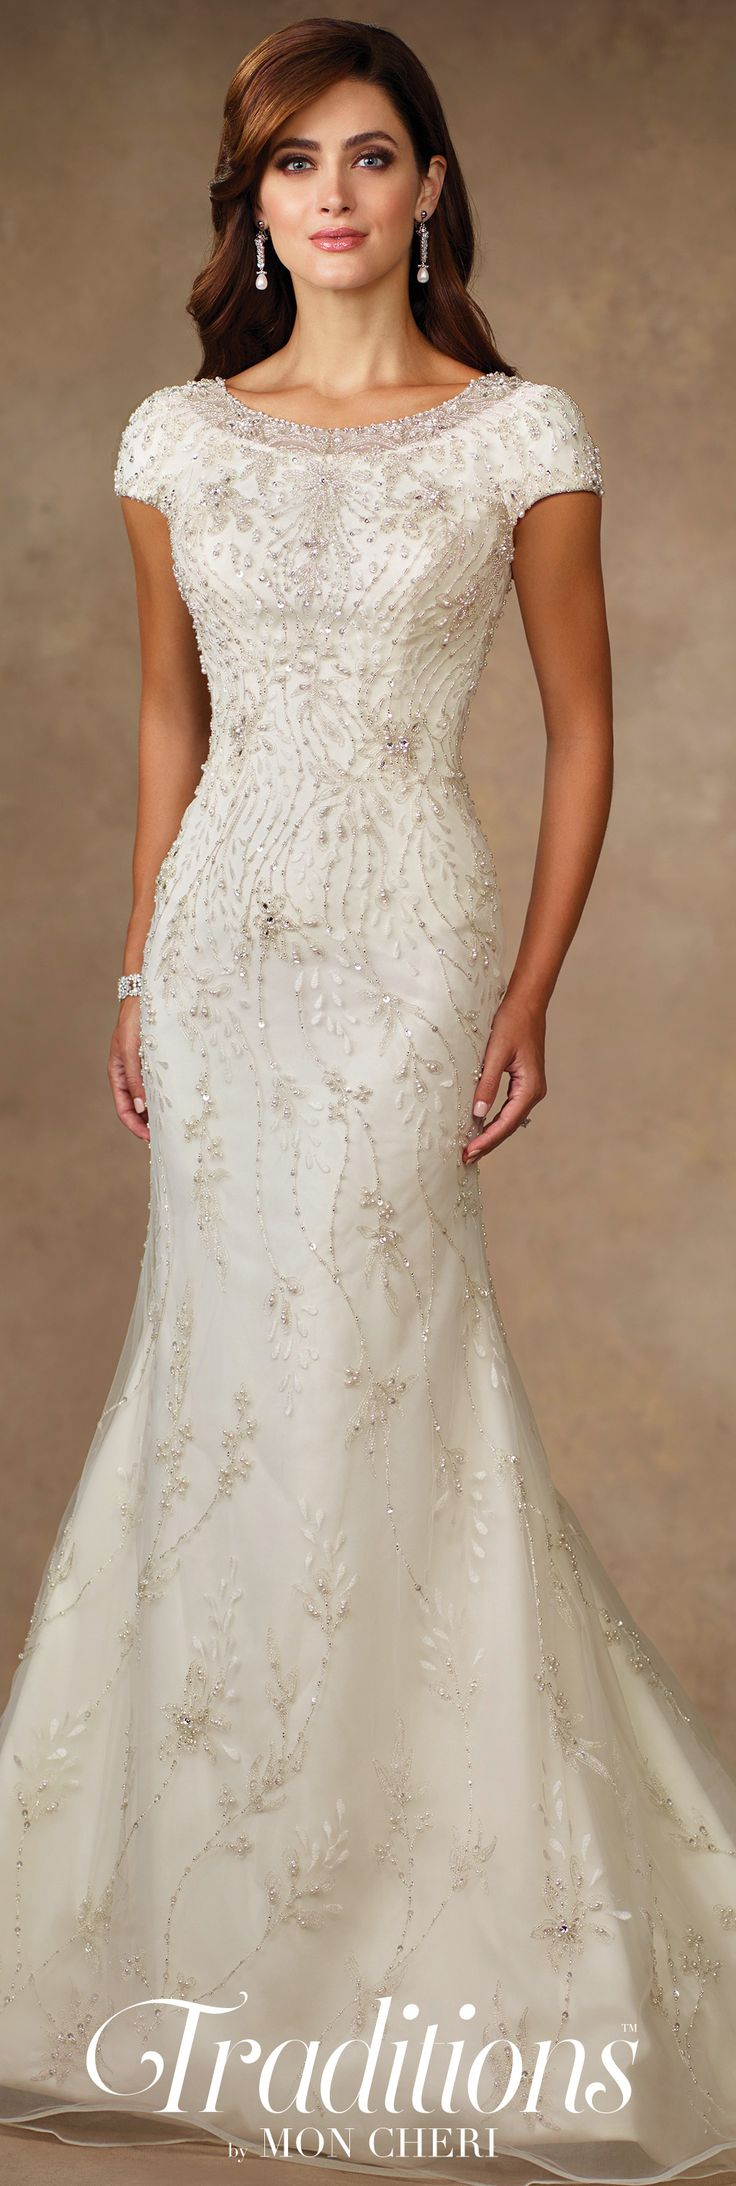 Trendy Modest Wedding Dresses TR